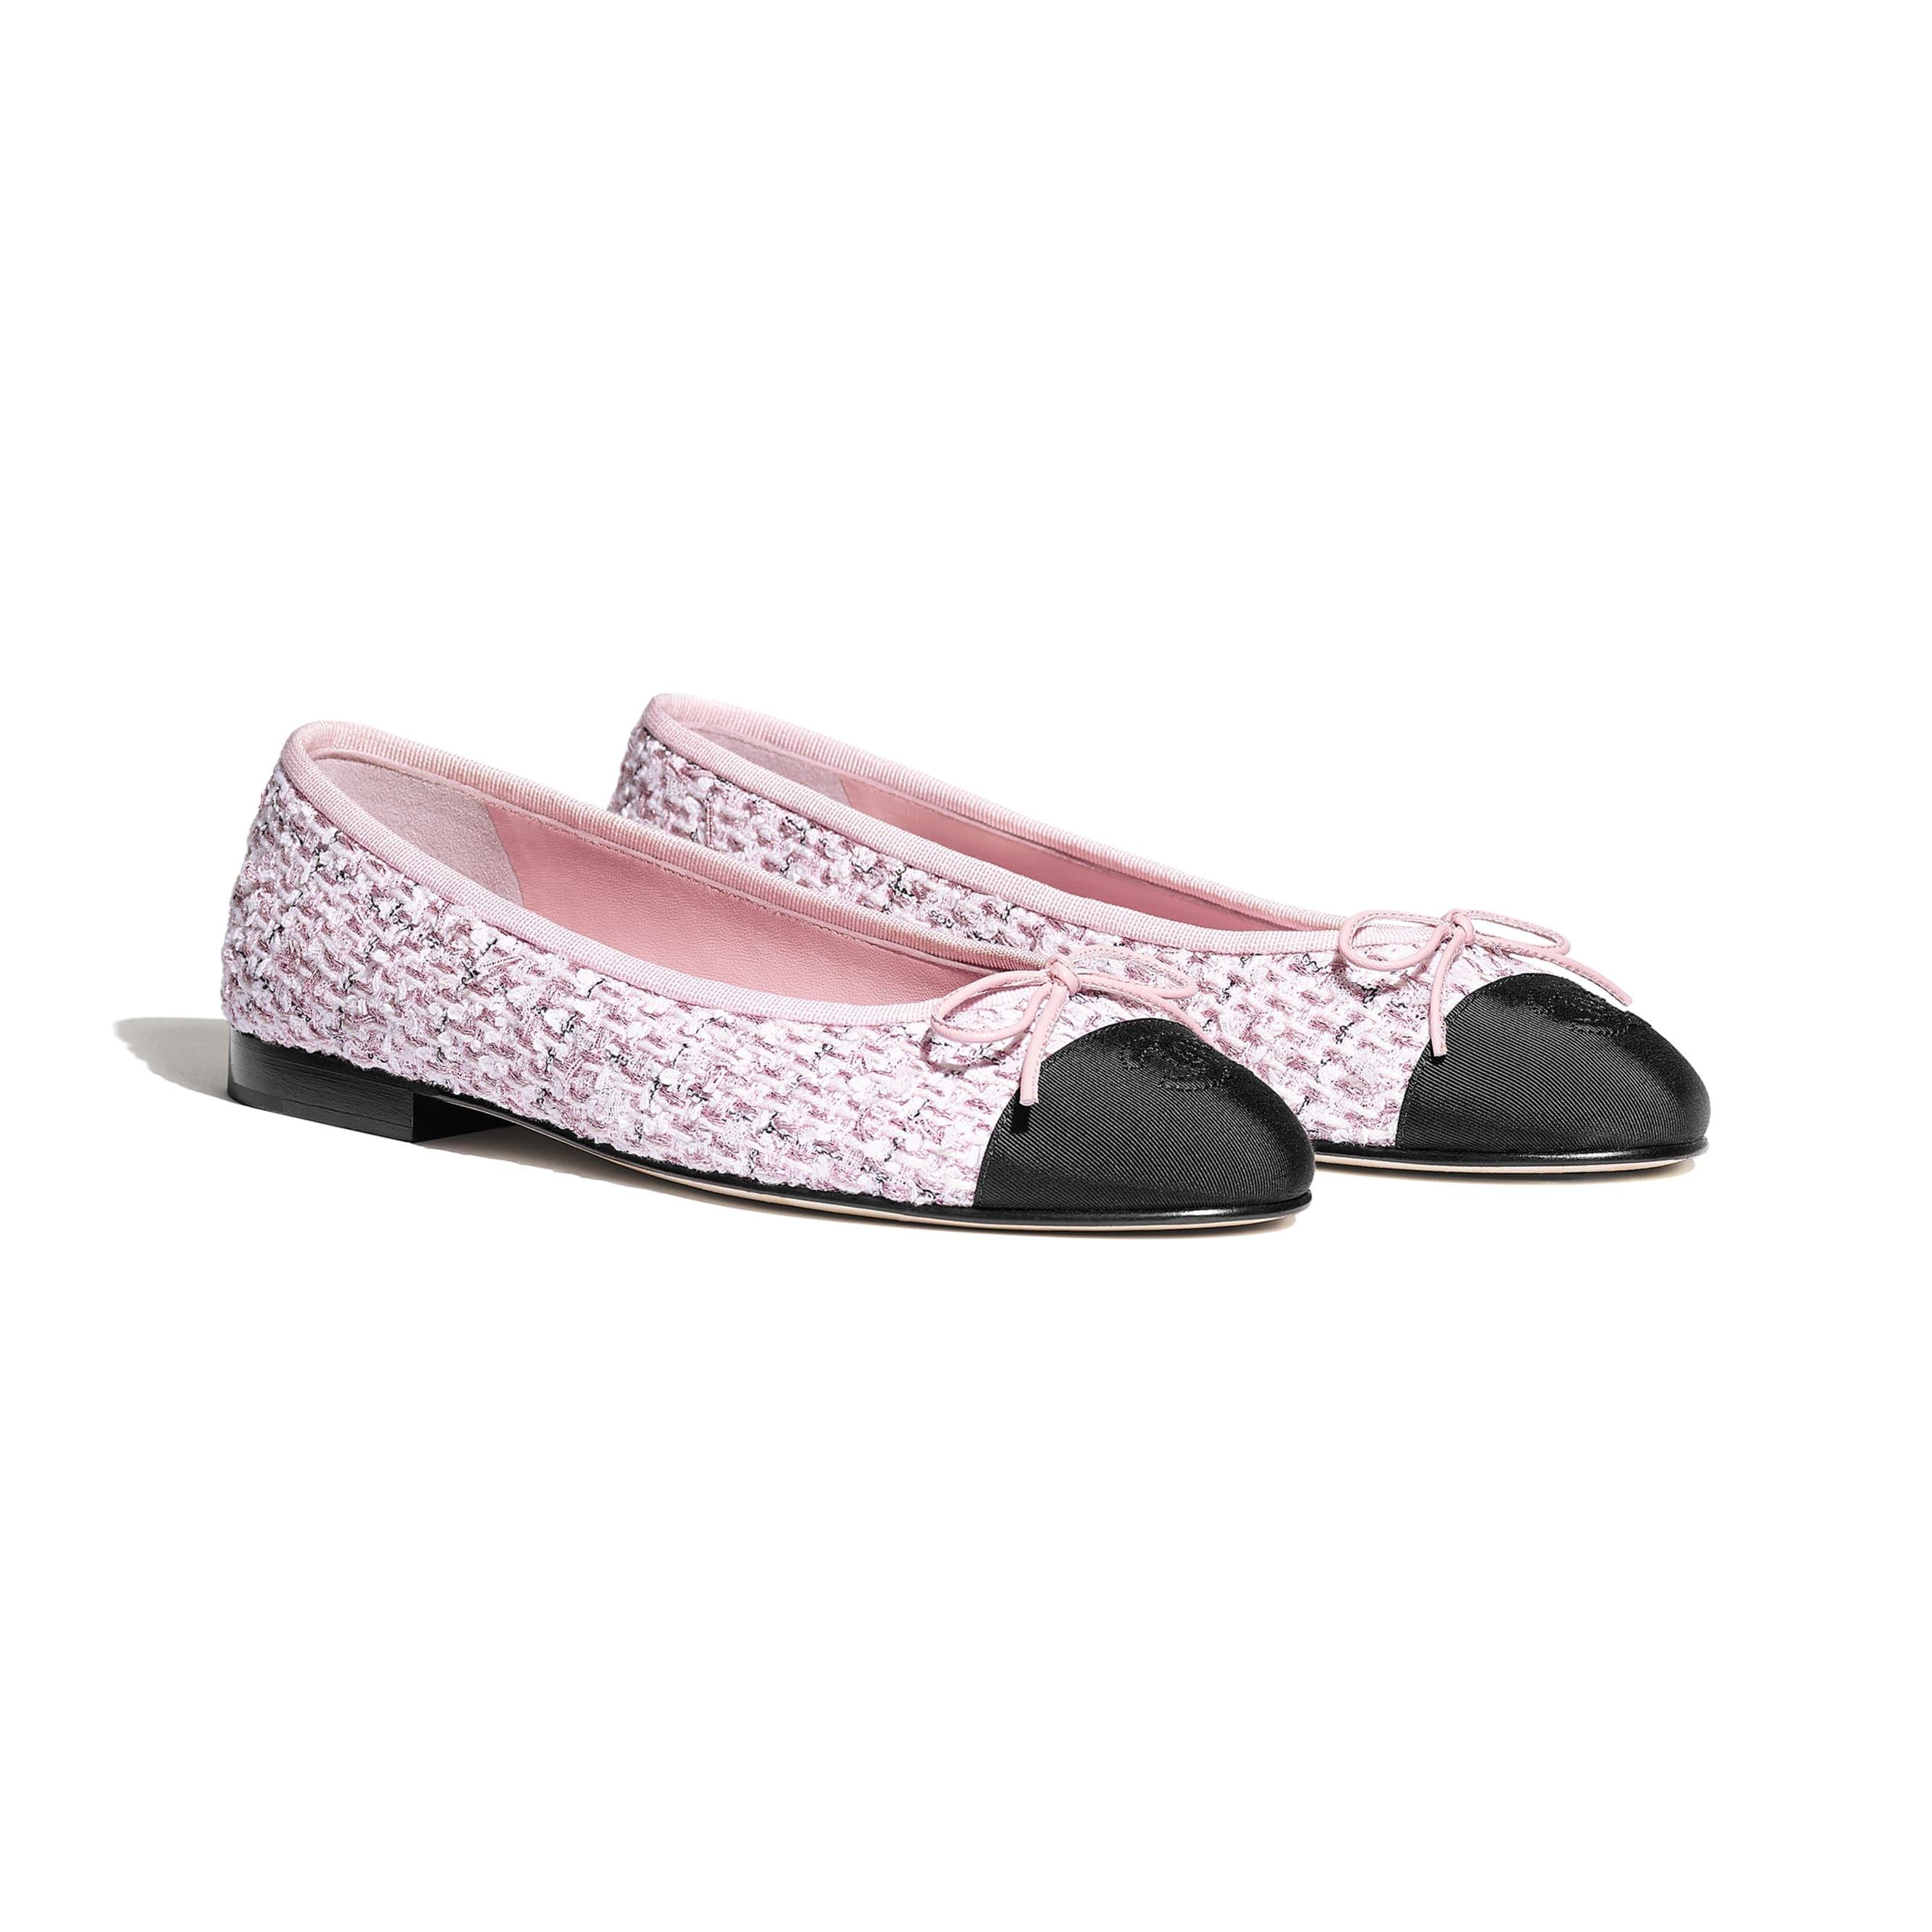 Flats - Pink & Black - Tweed & Grosgrain - CHANEL - Alternative view - see standard sized version